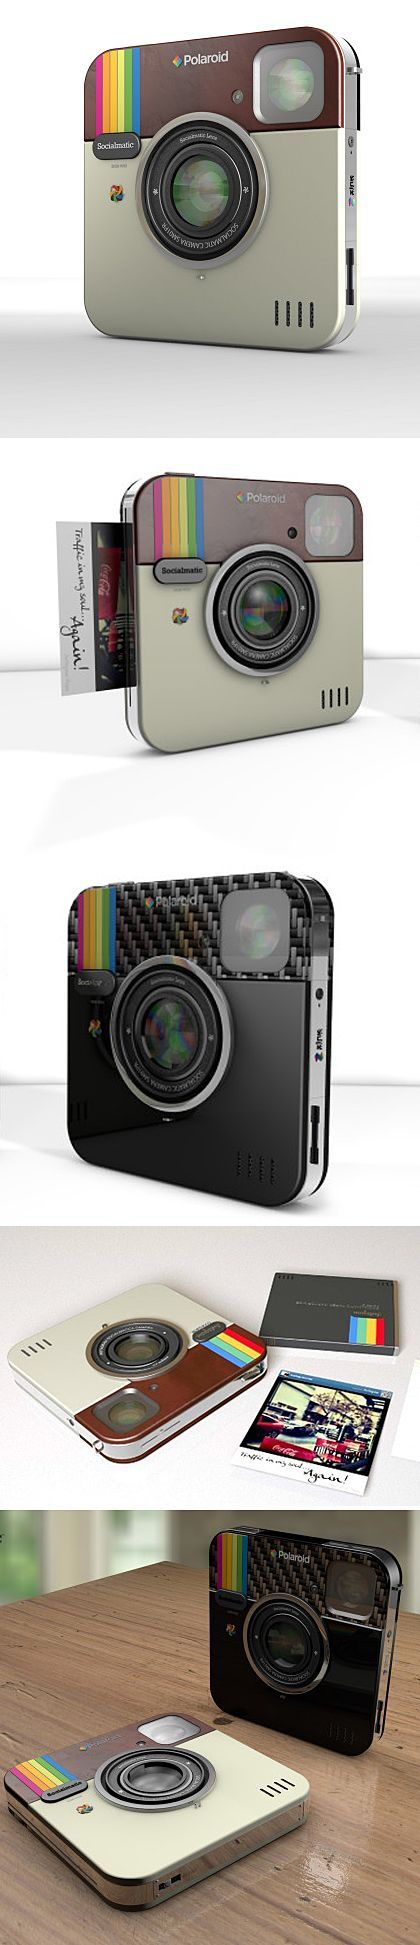 Socialmatic : Cool Instagram-Inspired Camera